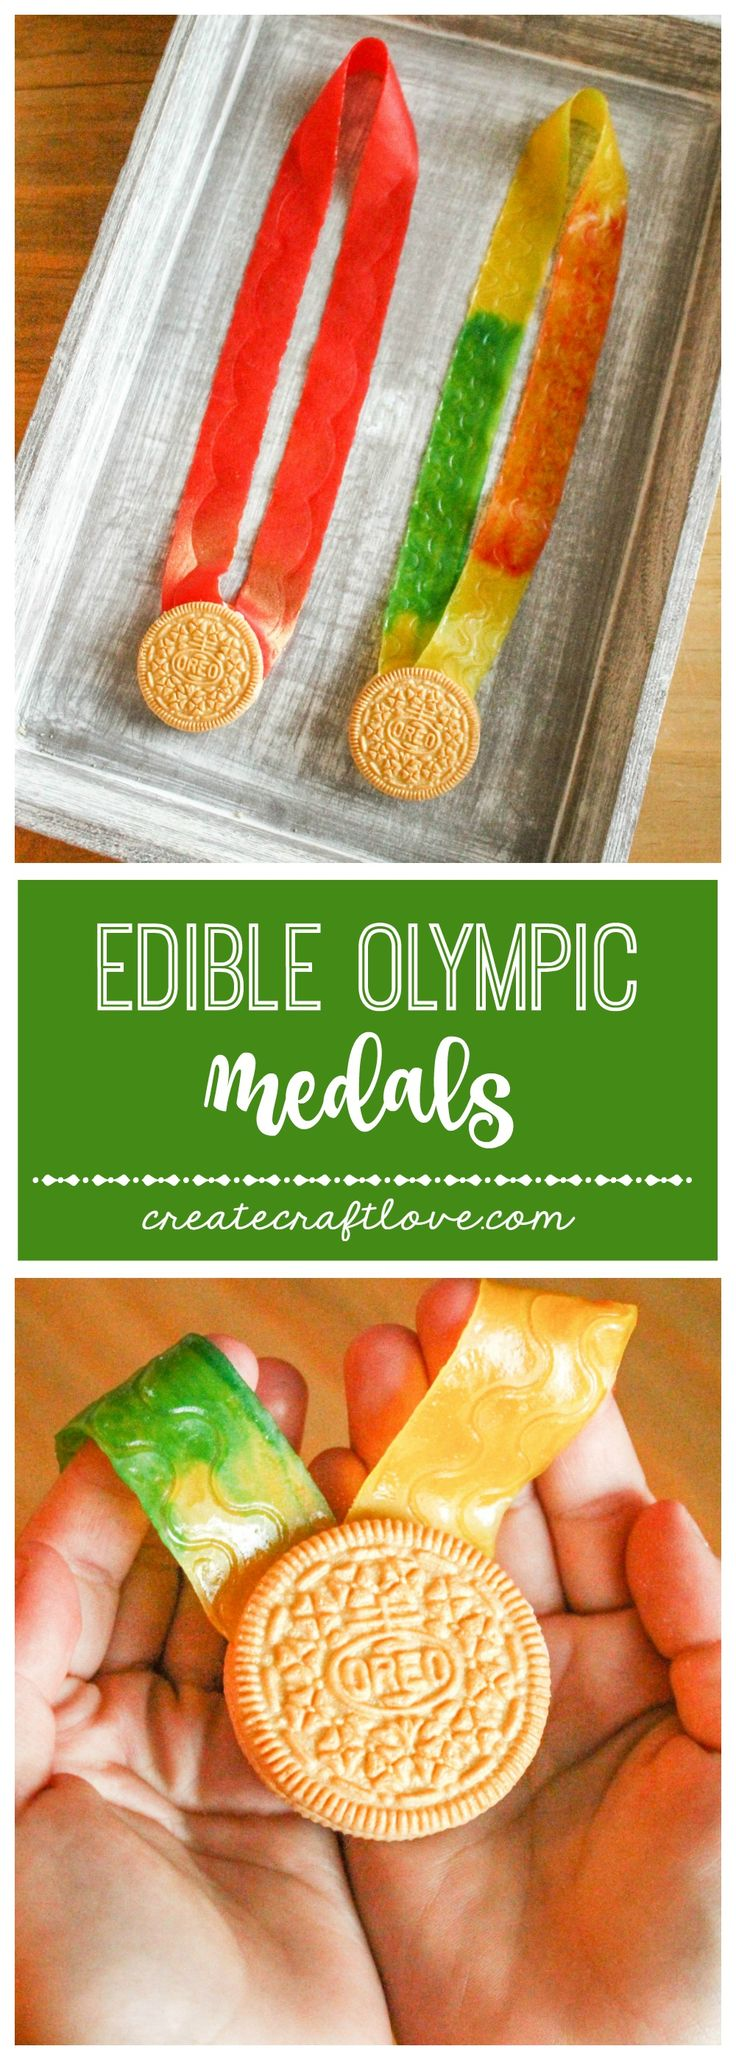 Whip up these Edible Olympic Medals for the Opening Ceremonies!  via createcraftlove.com